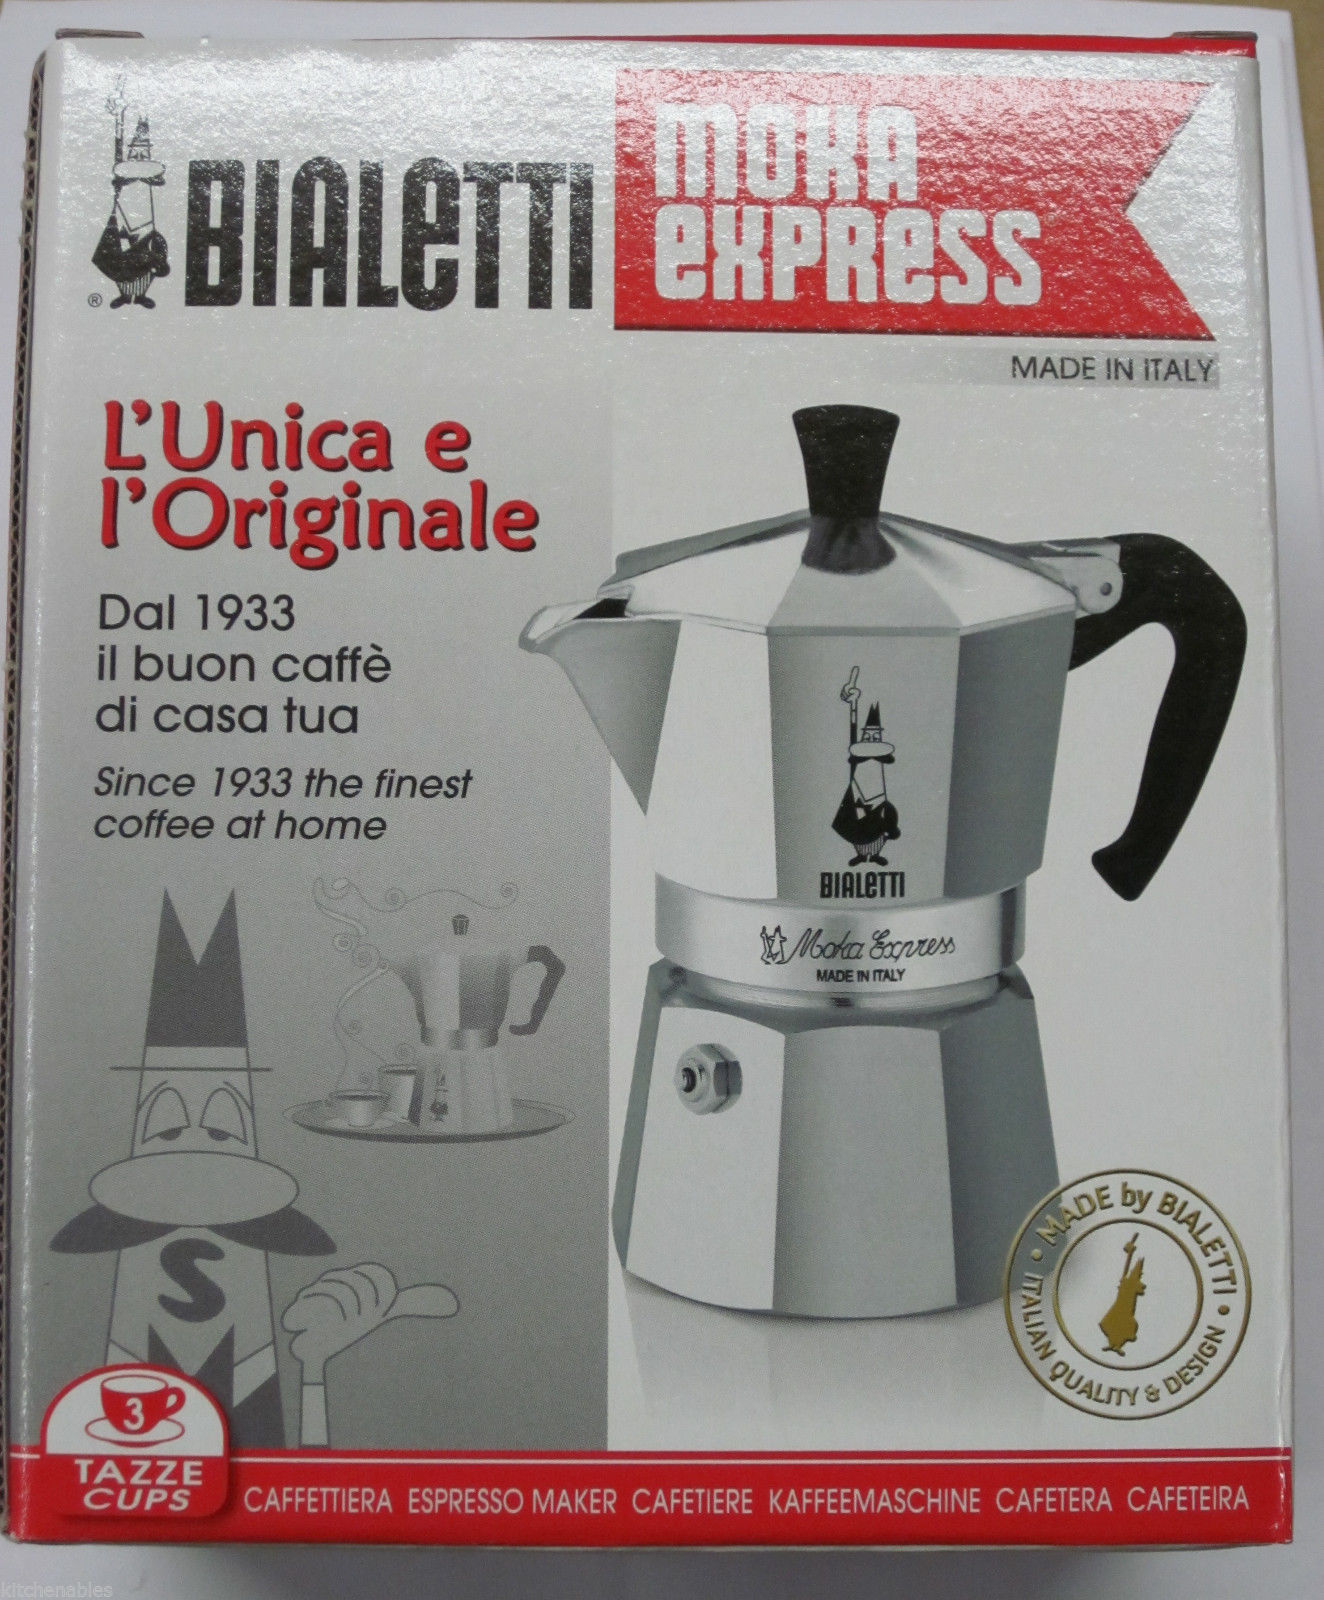 how to use bialetti moka express stovetop espresso maker